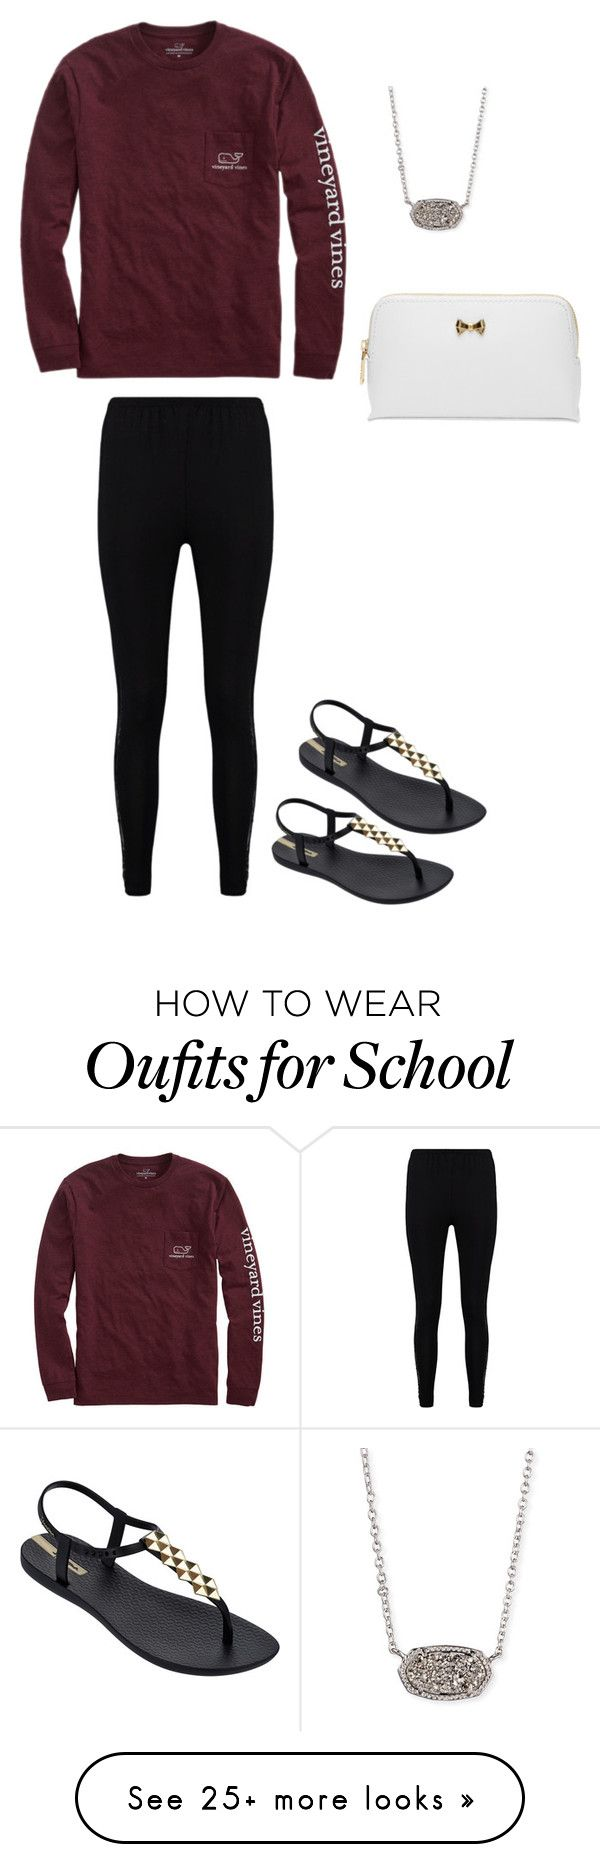 """School day"" by marthaec on Polyvore featuring Vineyard Vines, Boohoo, IPANEMA, Kendra Scott and Ted Baker"